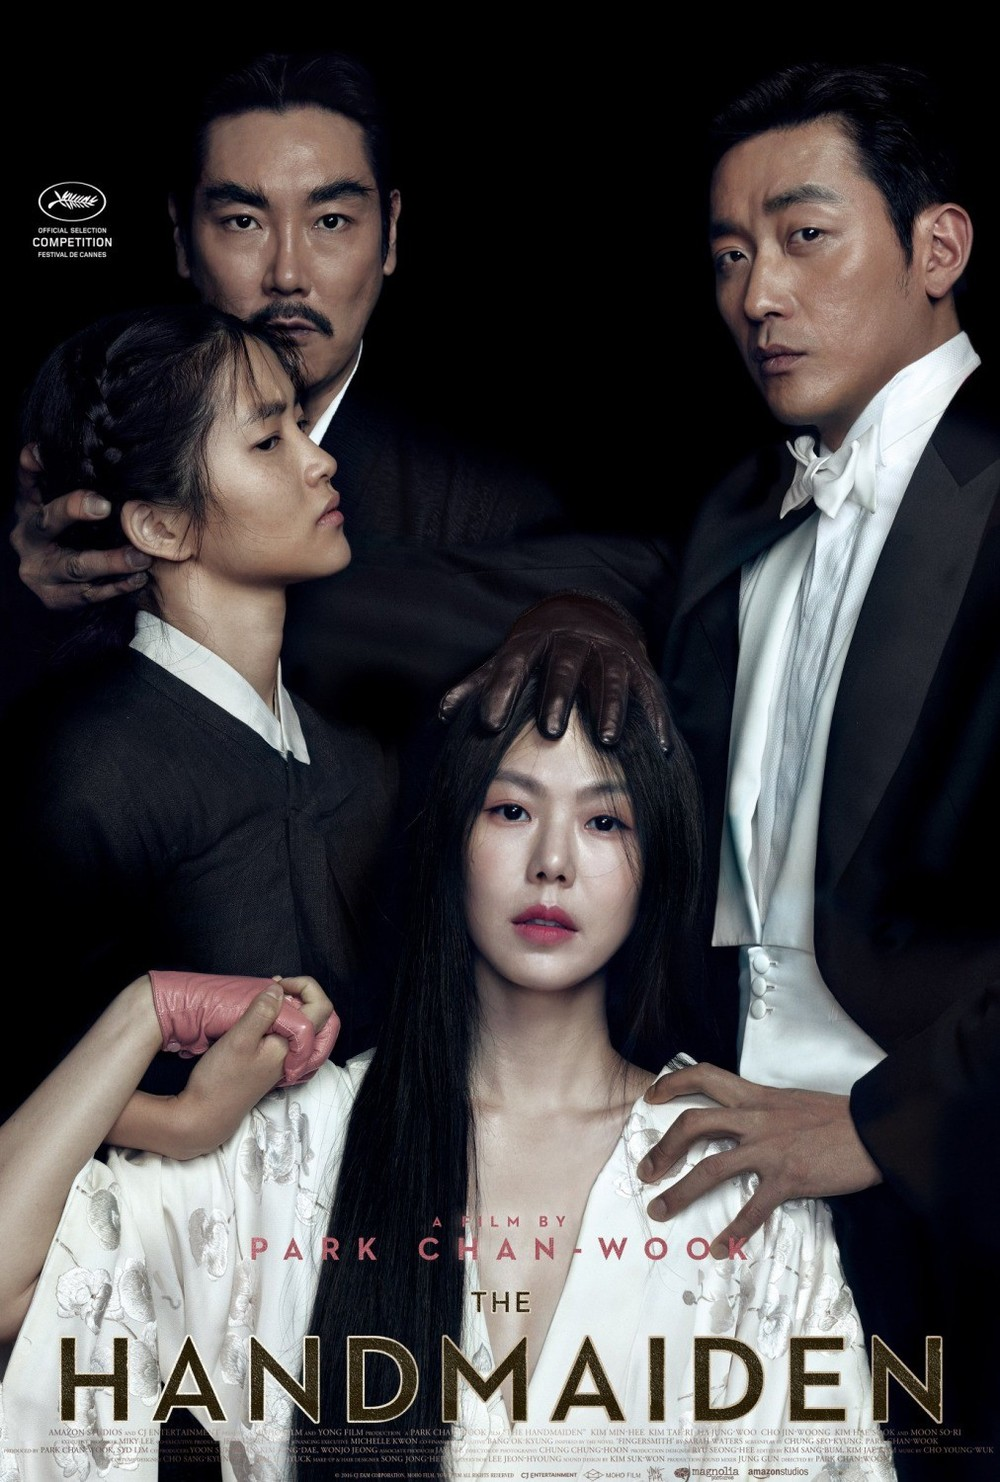 the-us-trailer-for-park-chan-wook-the-handmaiden-gets-crazy-weird